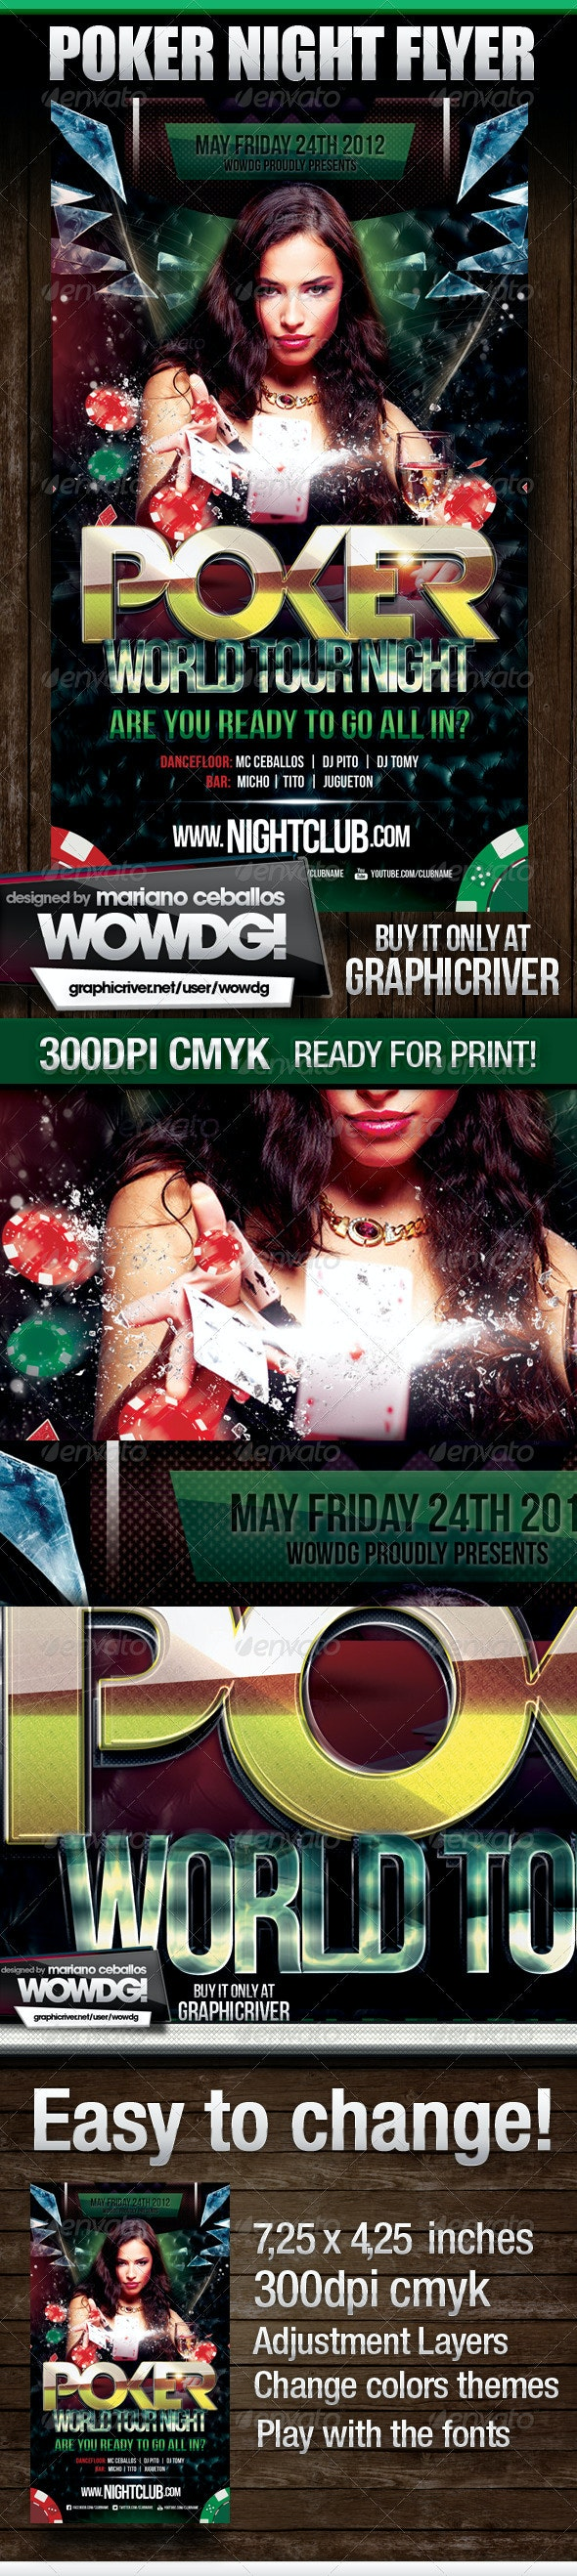 Poker Nights Party Flyer - Flyers Print Templates